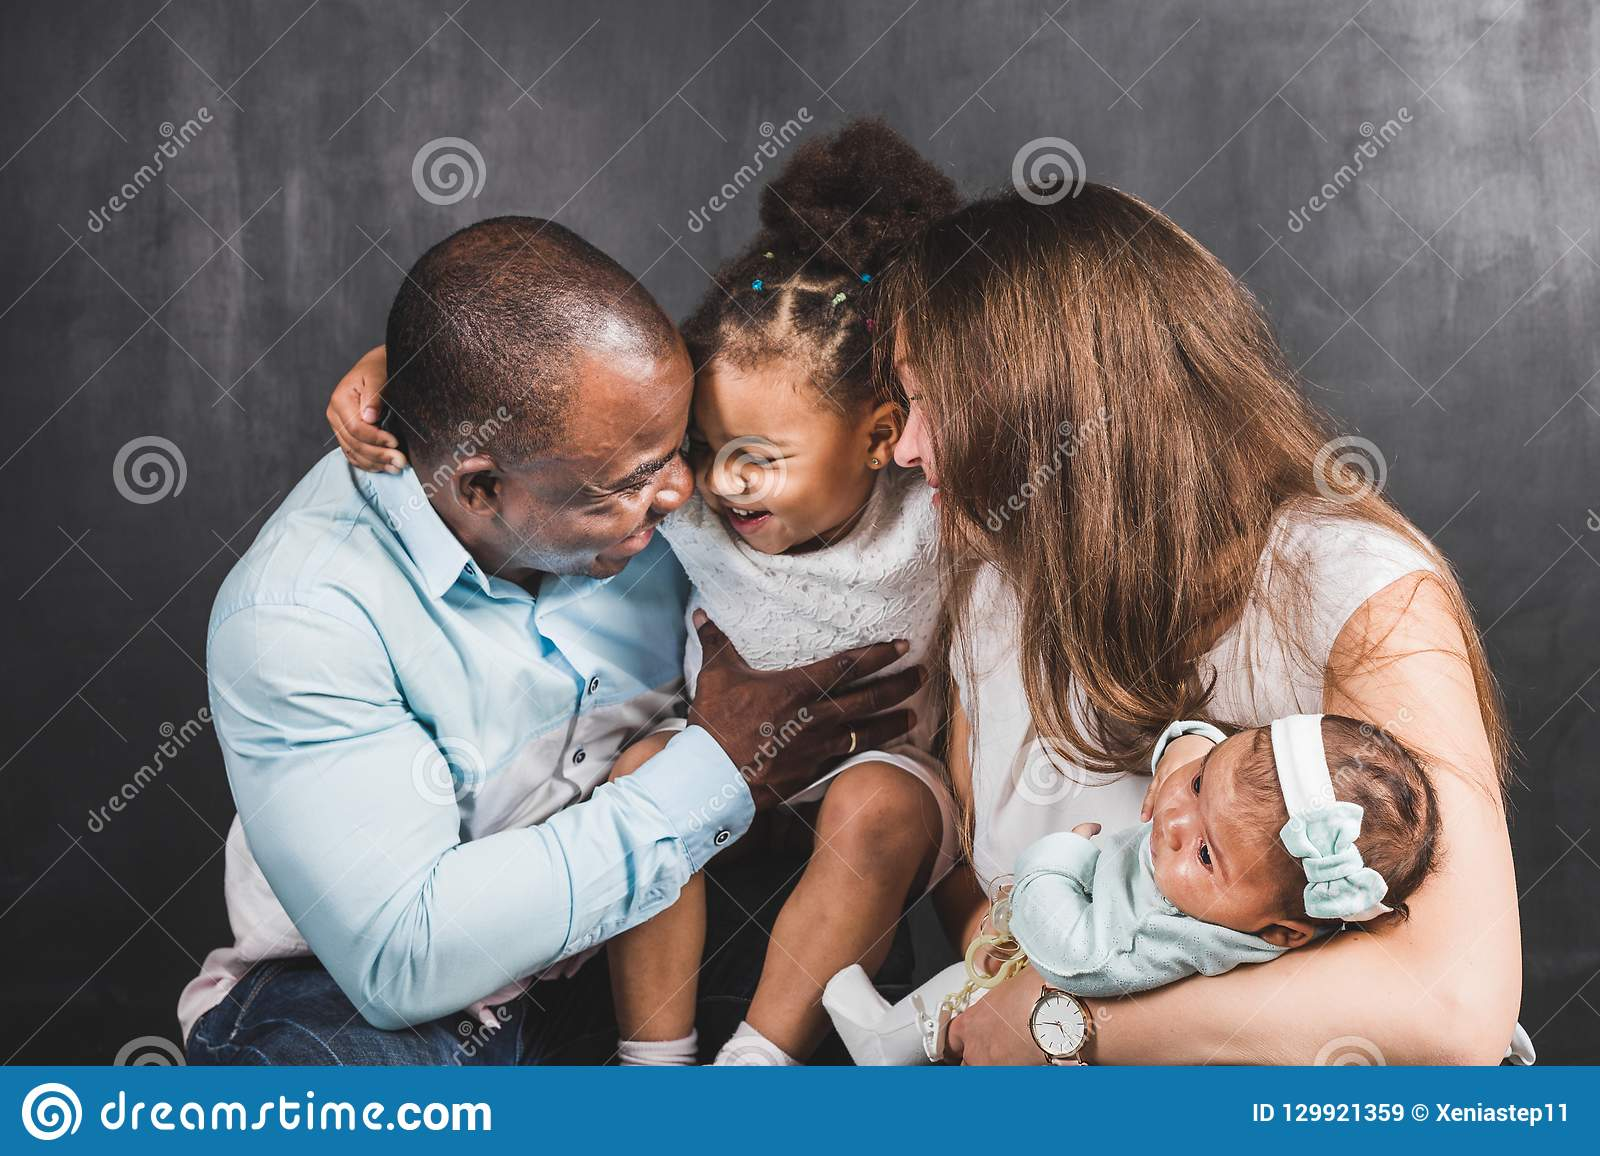 Portrait of an international family with two children on a black wall background